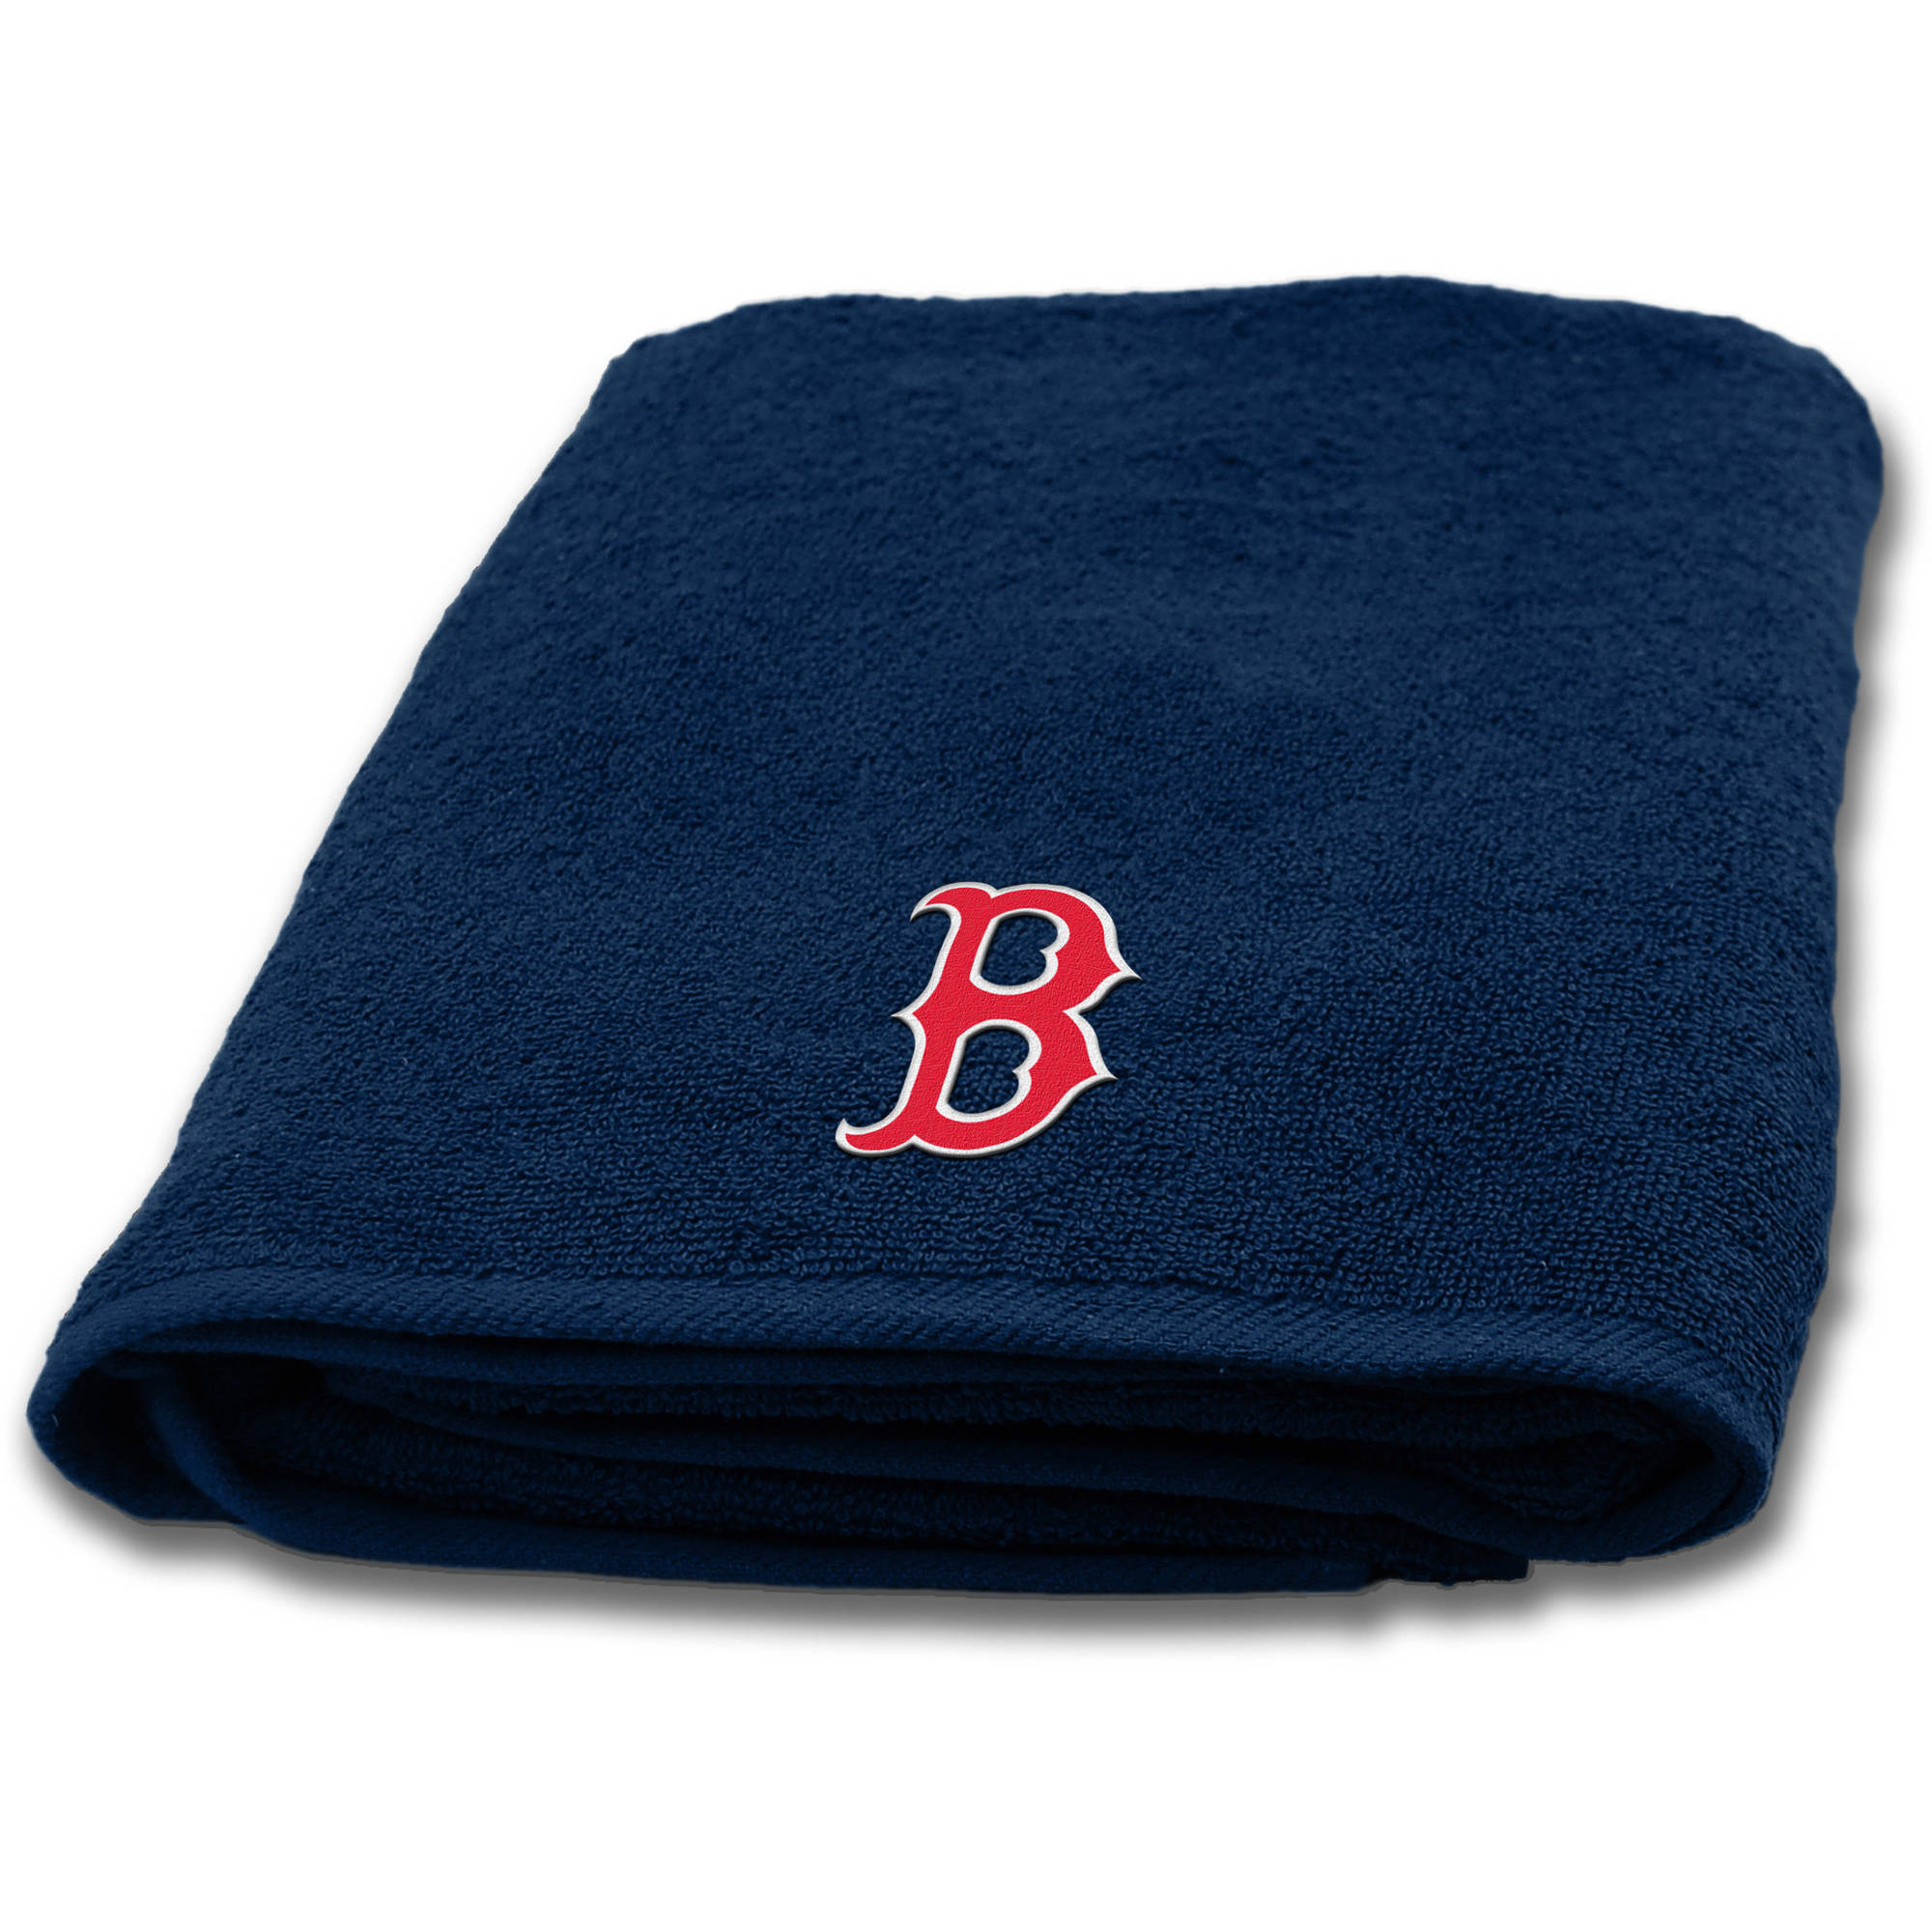 "MLB Boston Red Sox 25""x50"" Applique Bath Towel"